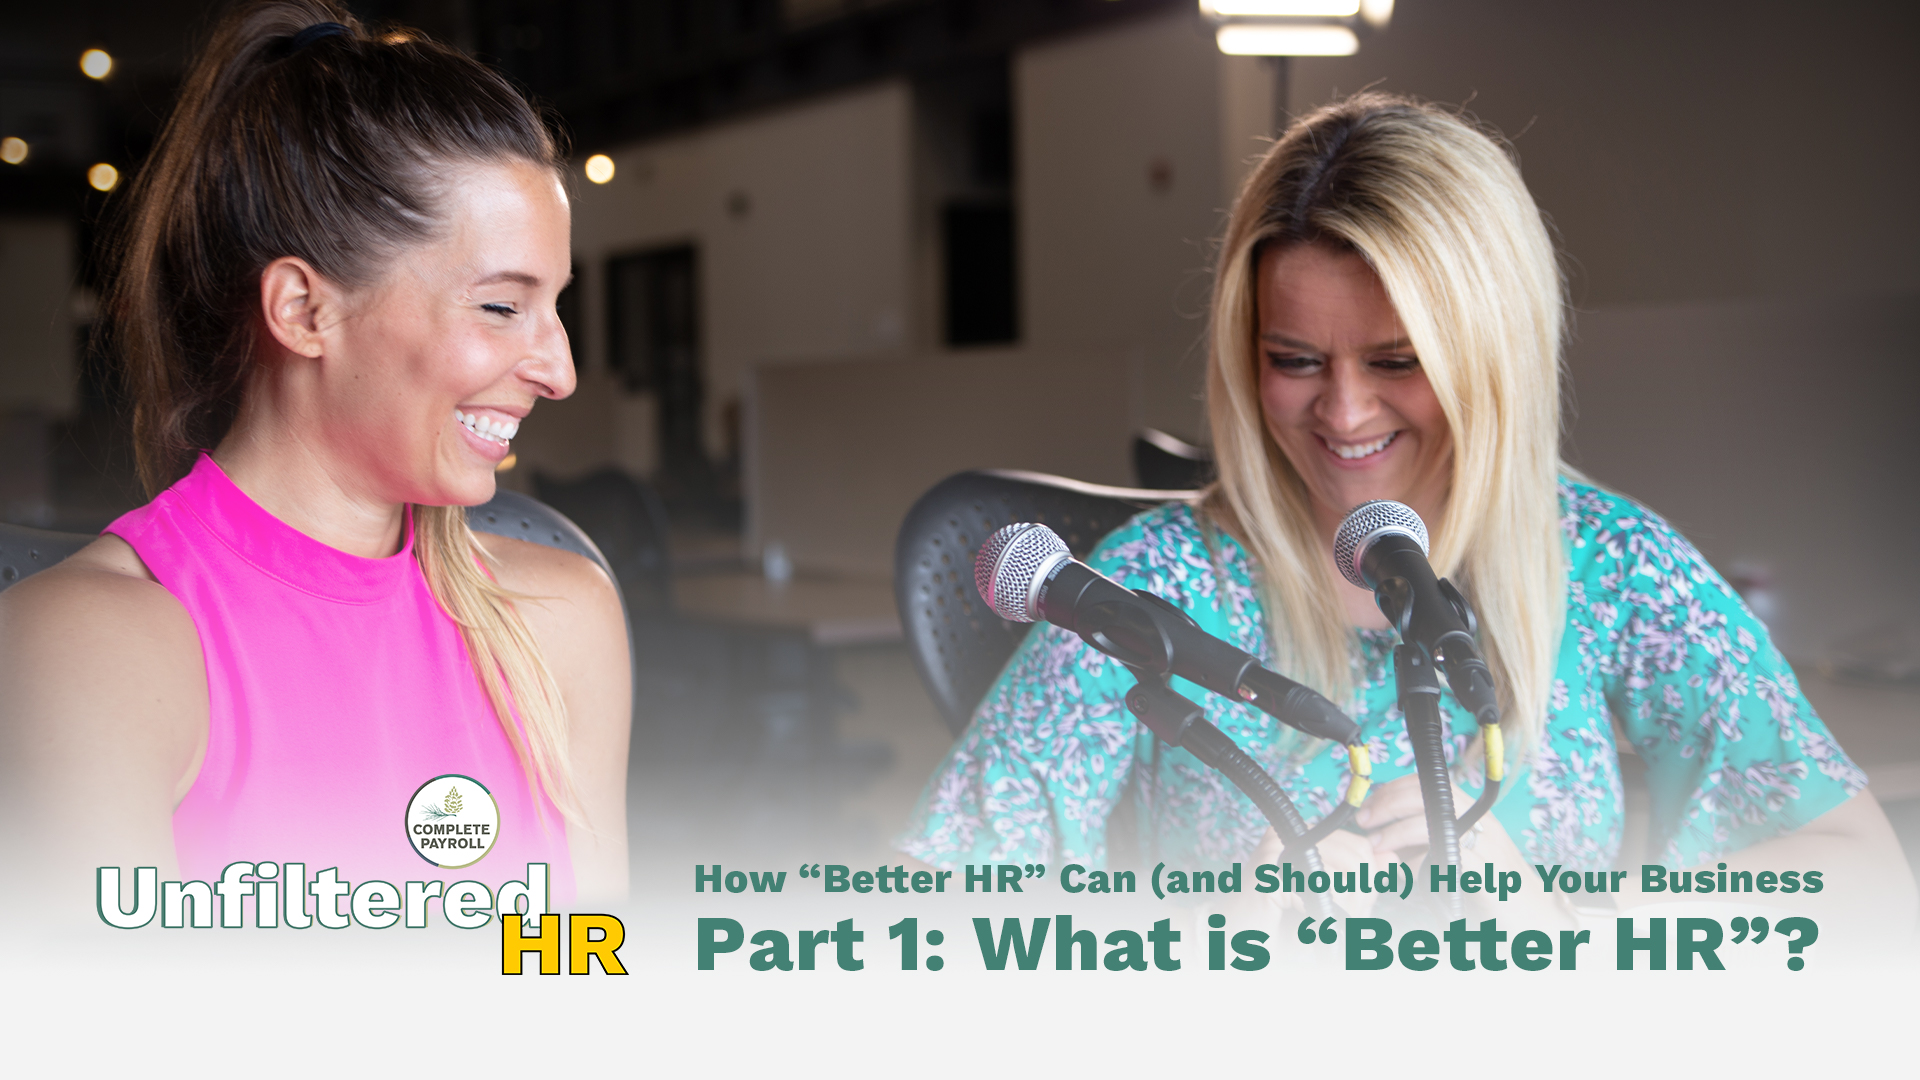 Five Lessons for Better HR, Part 1: What is Better HR? | Unfiltered HR